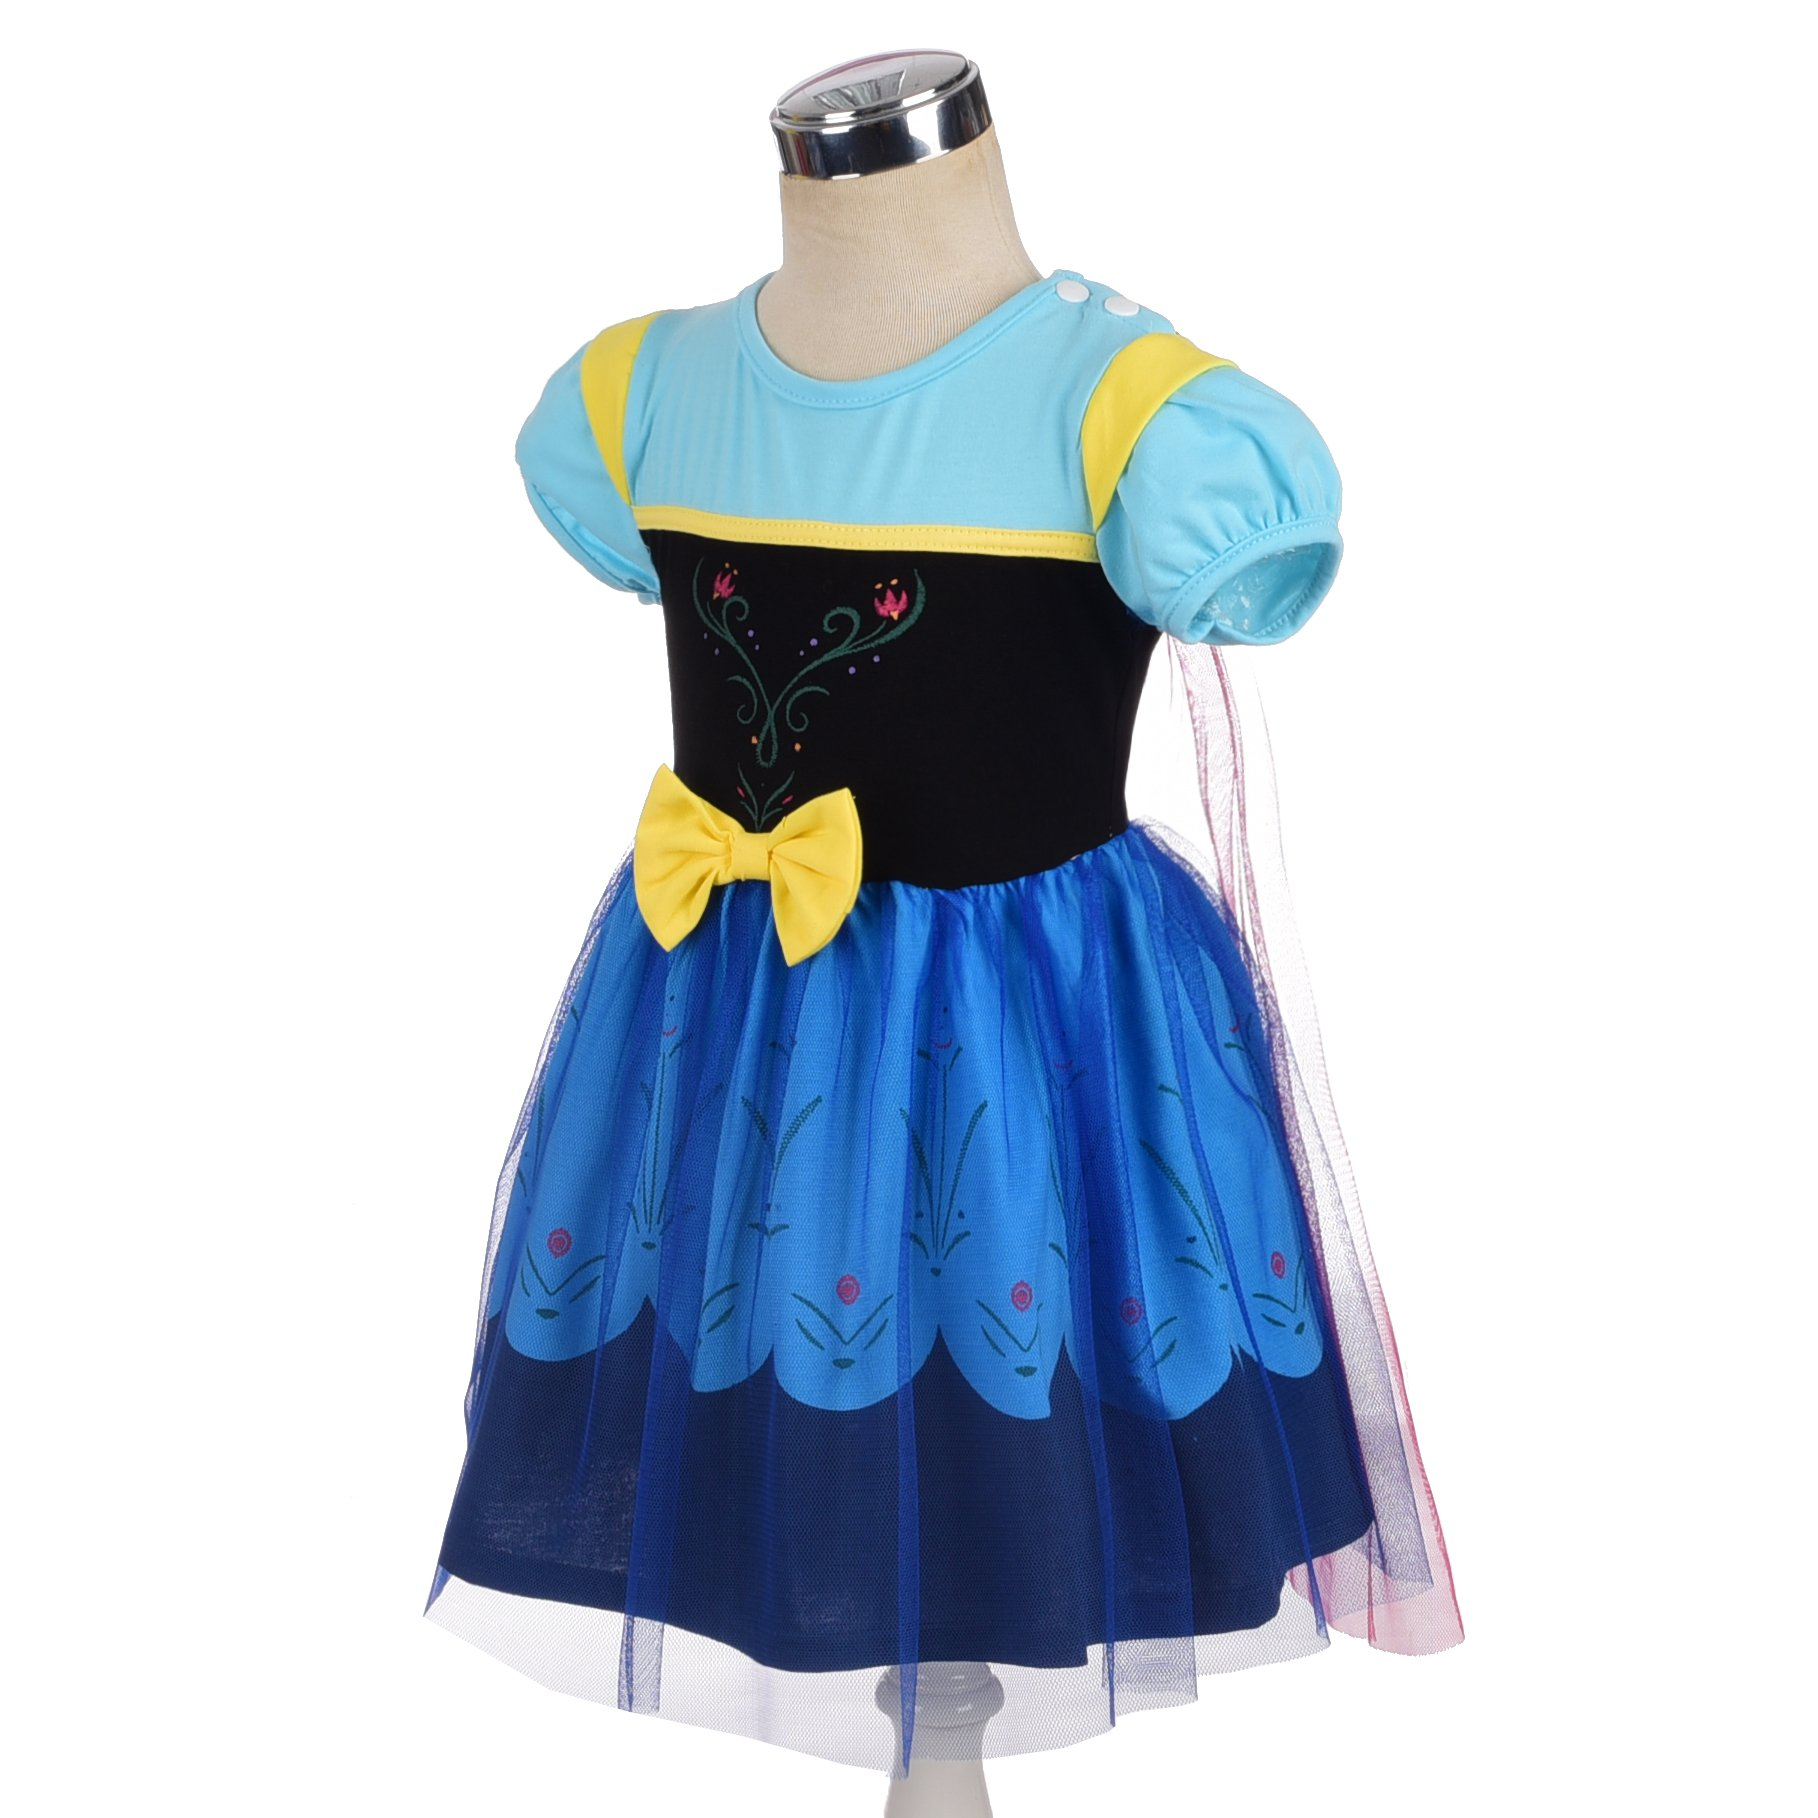 Dressy Daisy Princess Anna Dress for Toddler Girls with Cape Halloween Fancy Party Costume Dress Size 2T by Dressy Daisy (Image #3)